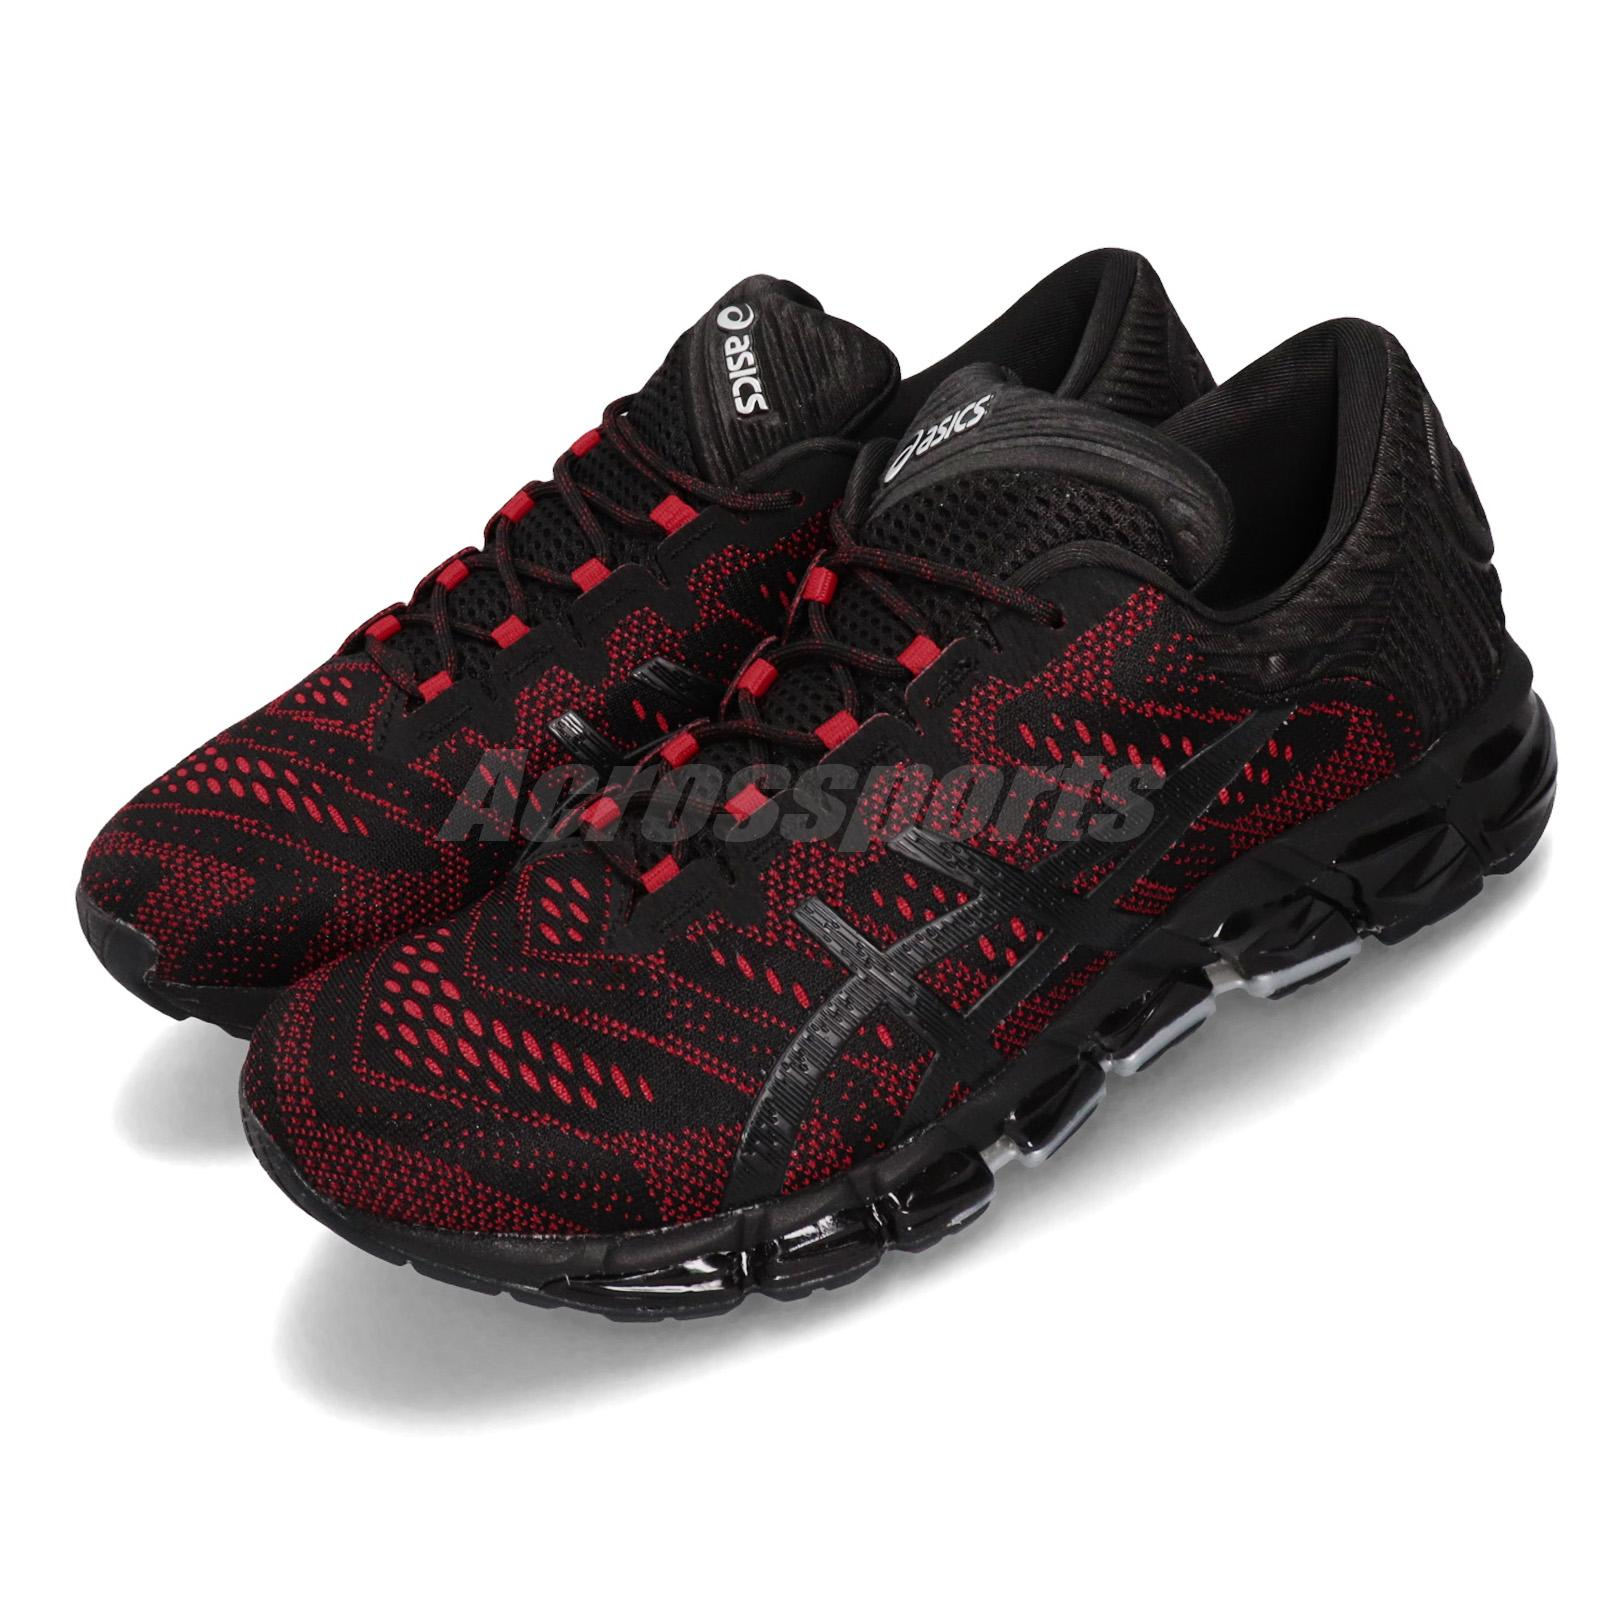 check out 3c26b cca49 Details about Asics Gel-Quantum 360 5 JCQ Black Classic Red Men Running  Shoes 1021A153-001